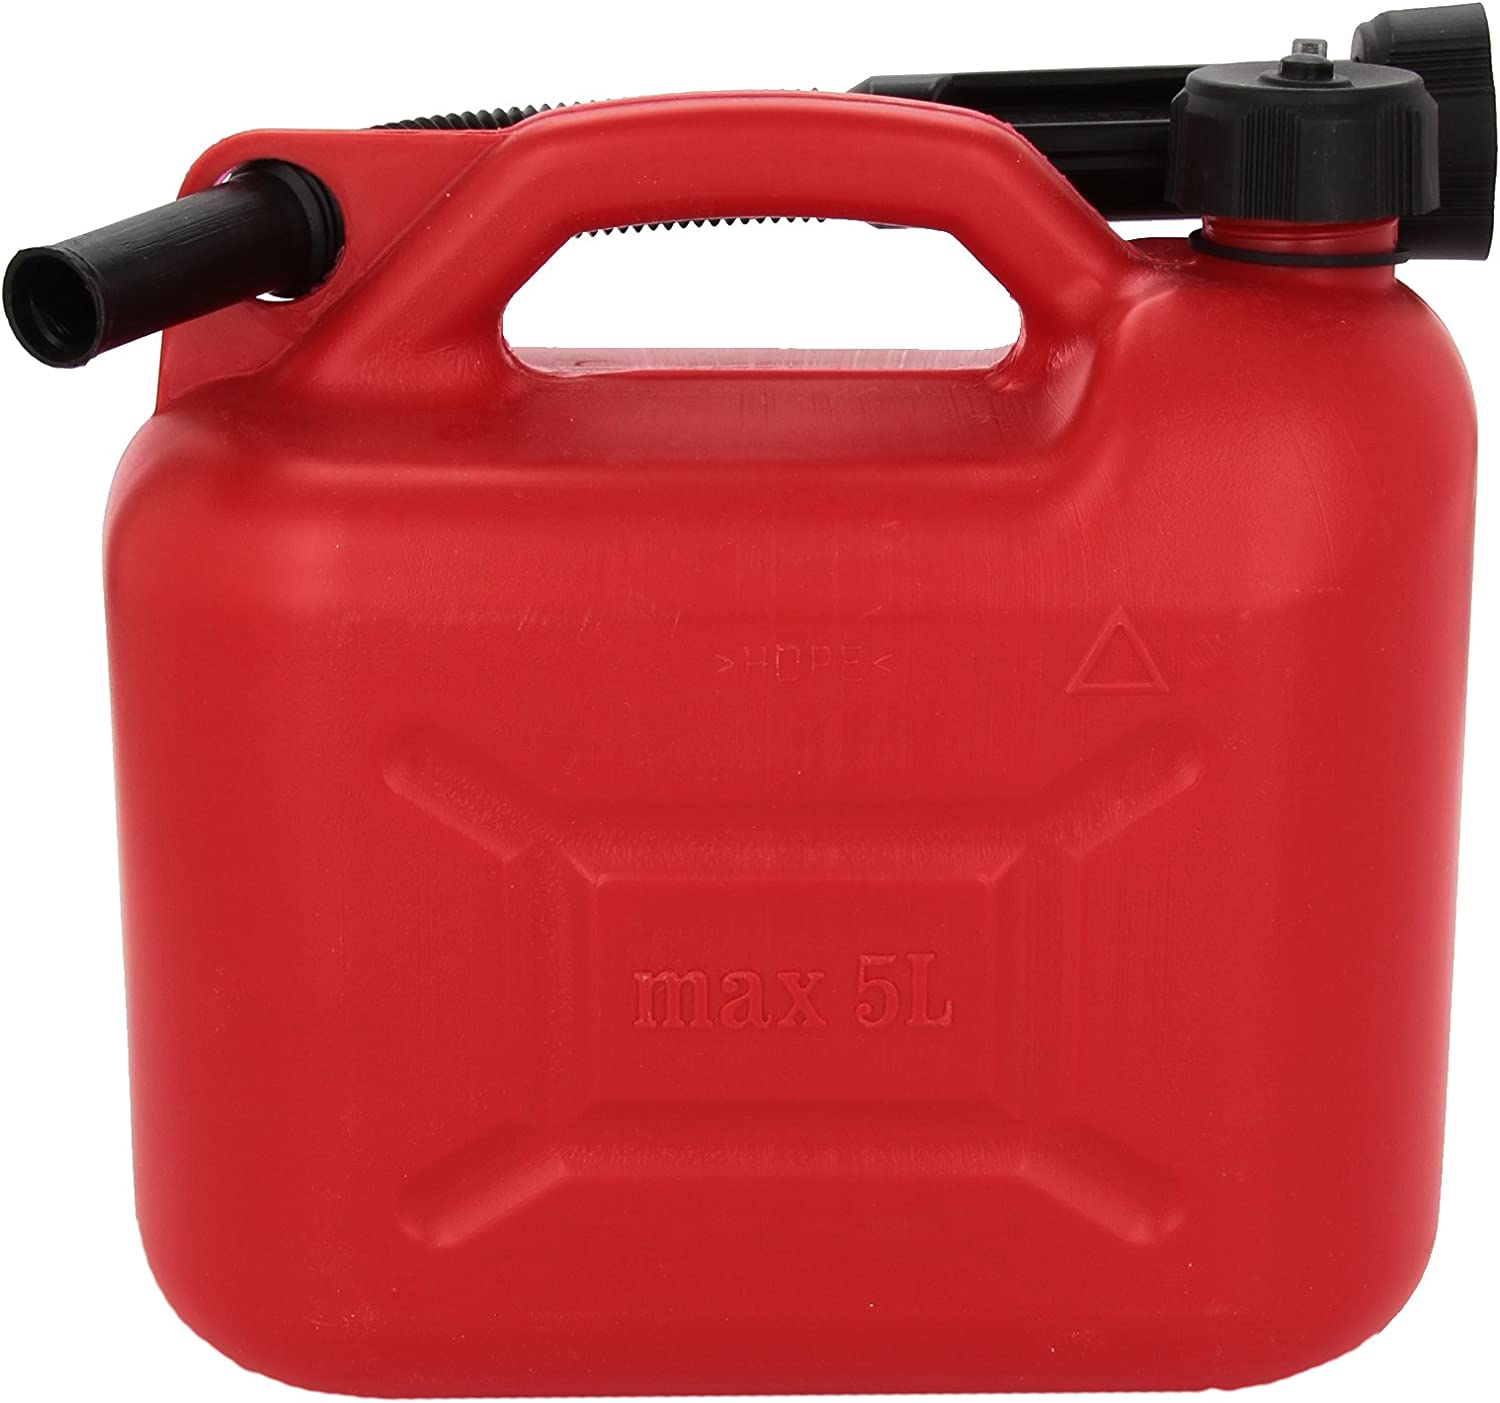 Bottari SpA 28062 Fuel Can with Spout Homologated 10 L